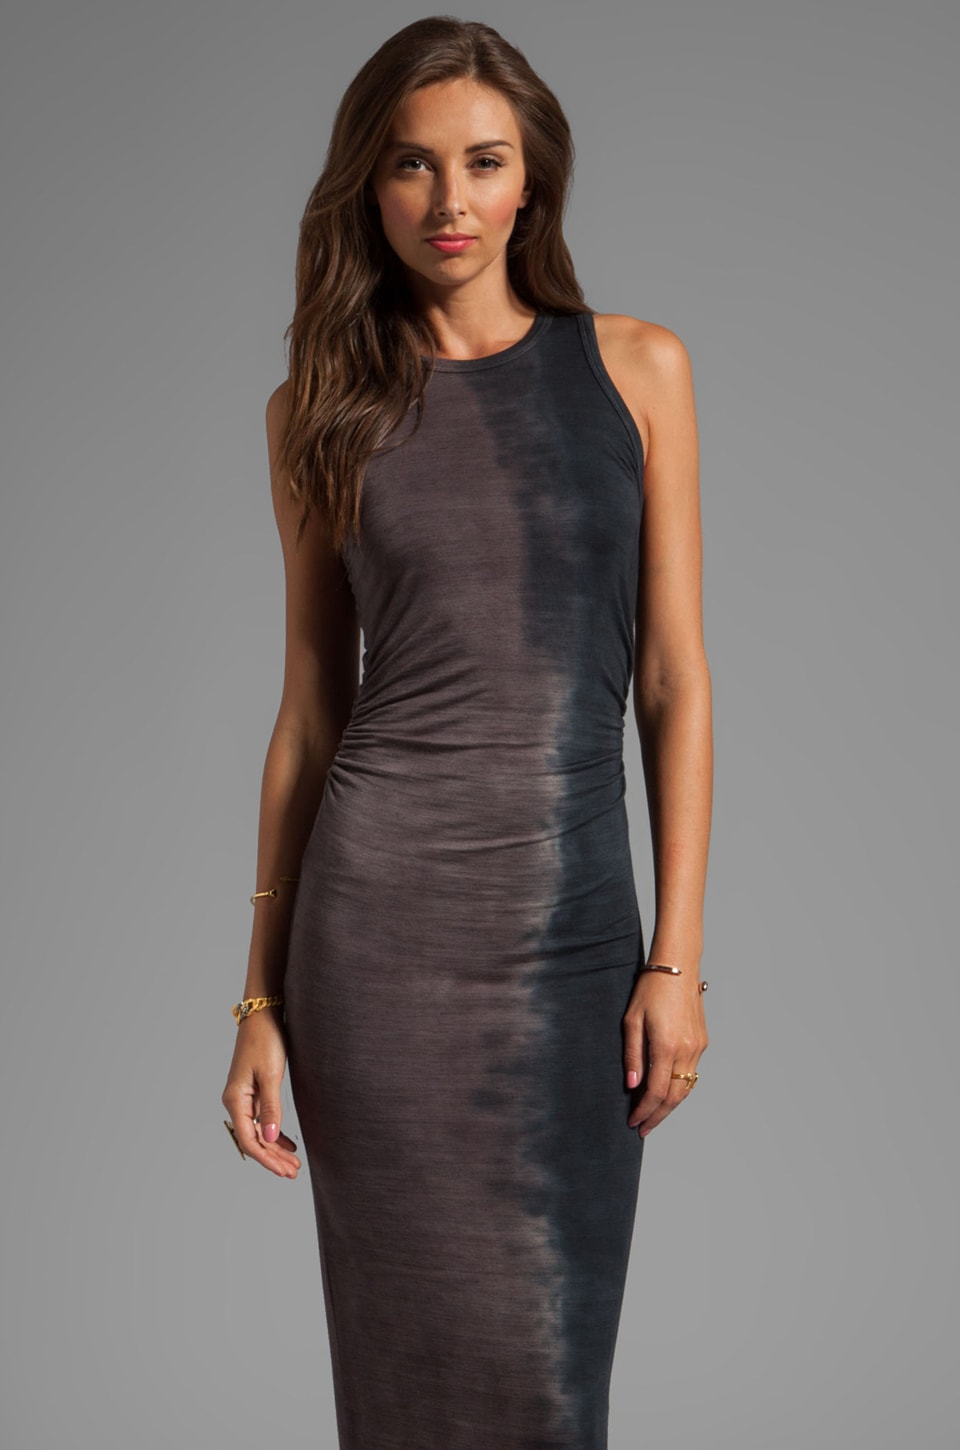 Kain Considine Dress in Dark Dip Dye